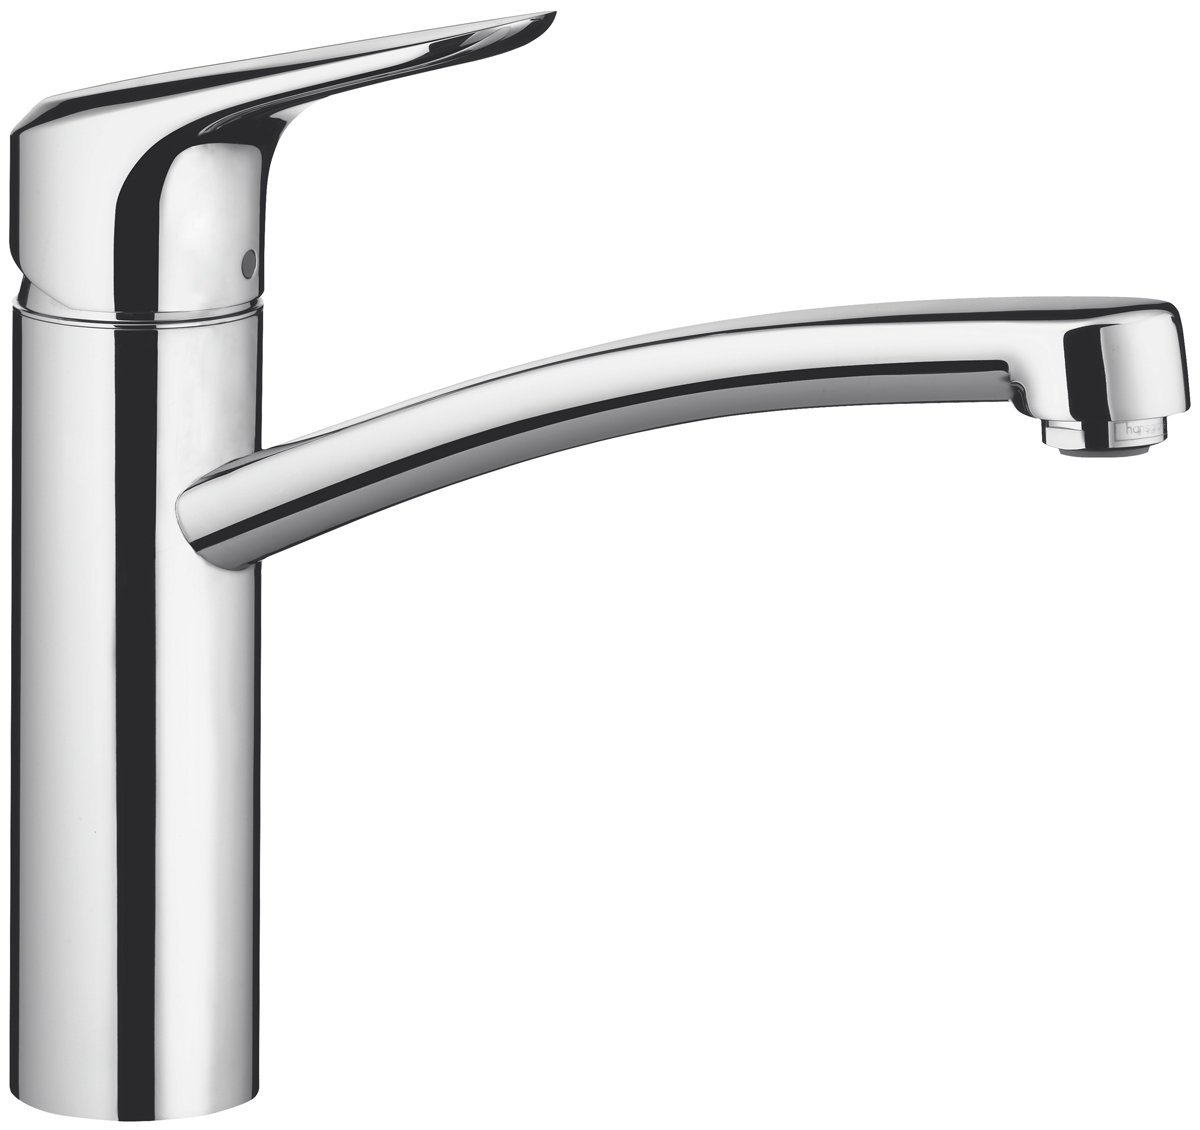 Hansgrohe 14815003 Ecos M Swivel Kitchen Mixer Tap | Appliances Online